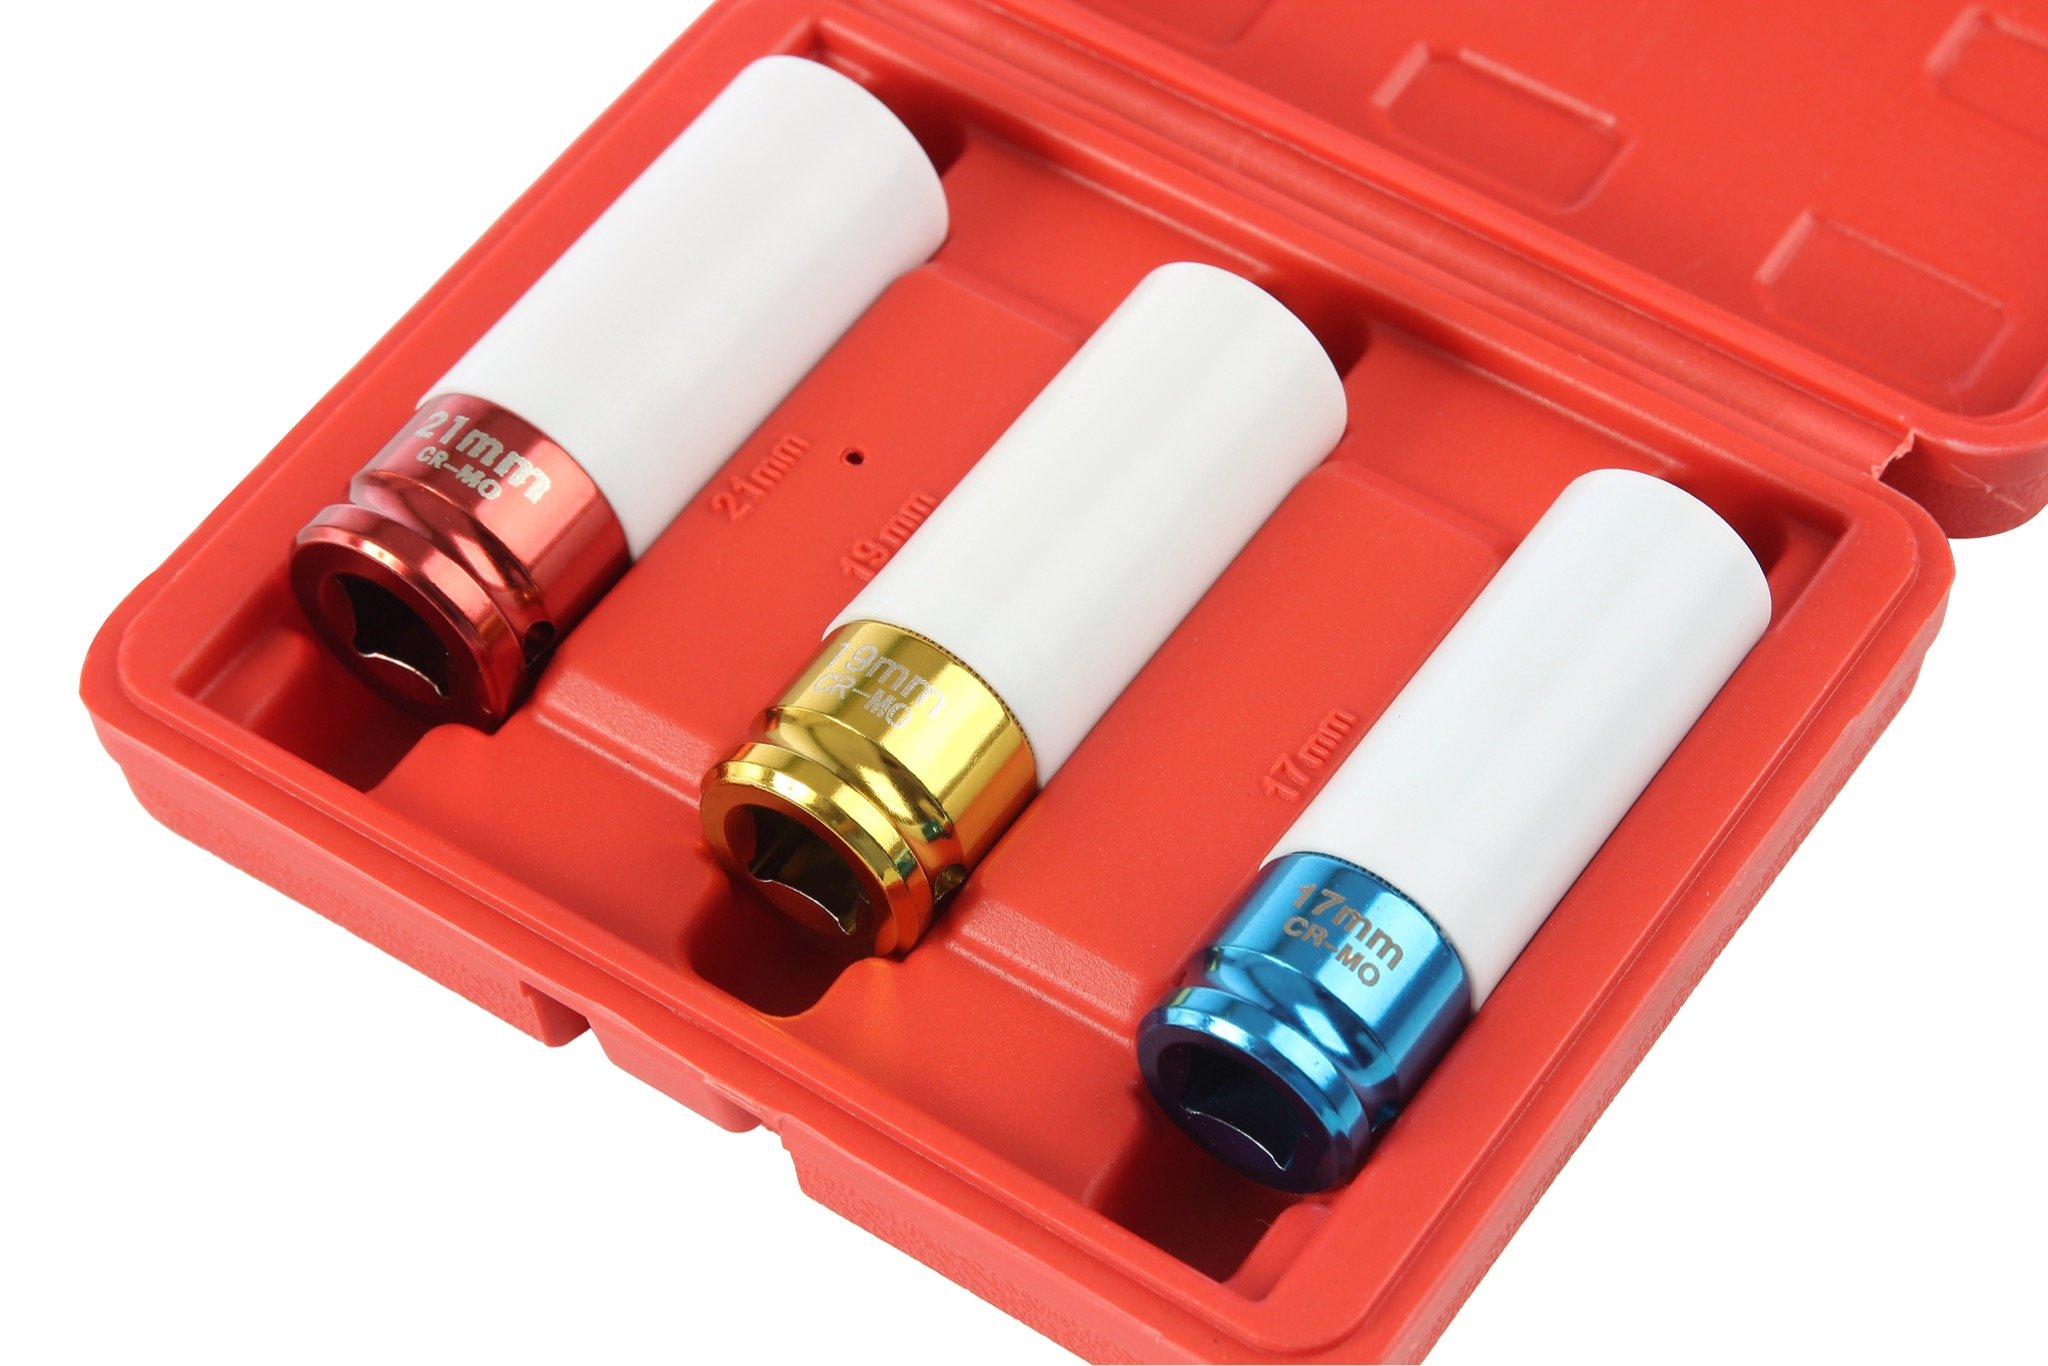 Professional Lug Nut Socket Set Manufactured Using Quality Chromoly Steel, 3-piece Thin Wall Impact Sockets, Durable Lug Nut Remover by Shankly